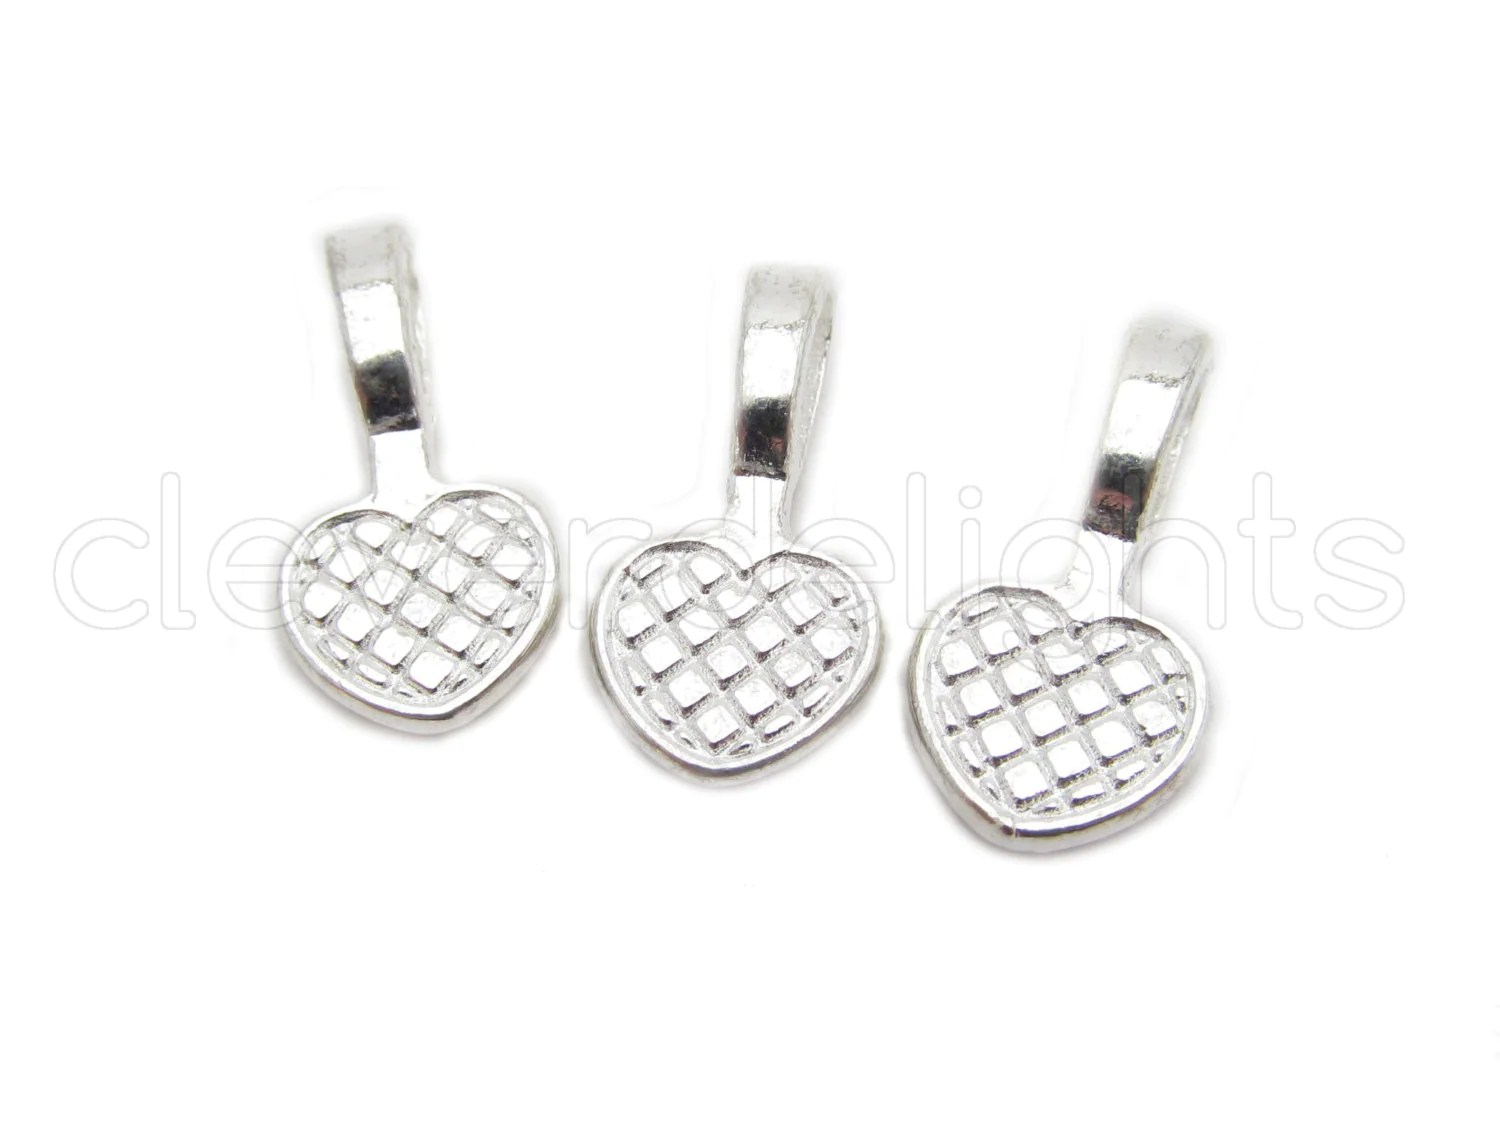 50 Heart Bails 20x10mm Shiny Silver Color Medium Glue On